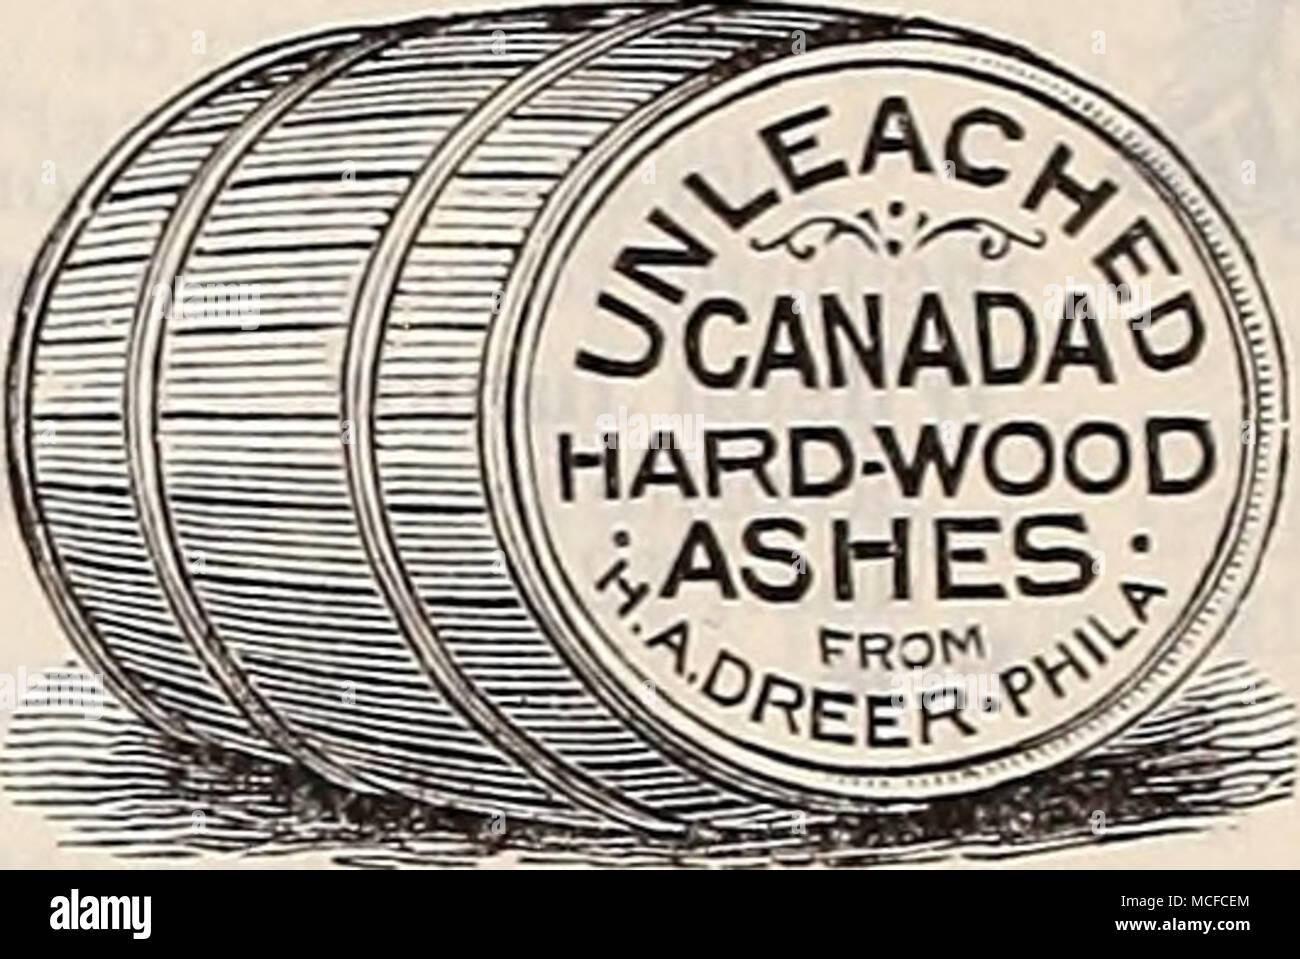 . Canada Hard-Wood Ashes. Indispensable as a lawn dressing, or to apply to orchards. They should be applied late in fall,or early in spring, so that the rains and snows may leach the ashes and cany the elements down to the roots of grass or trees. Our ashes are screened and are in proper condition for immediate use. Apply at the rate of 1000 to 1500 lbs. per acre. 50 lbs., §1.00; per bbl. (about 250 lbs.), §3.00; ton, §20.00. Clay's Fertilizer. This valuable imported manure is especially recommended to all who grow either fruit, flowers or vegetables, and wish to bring them to the highest per- - Stock Image